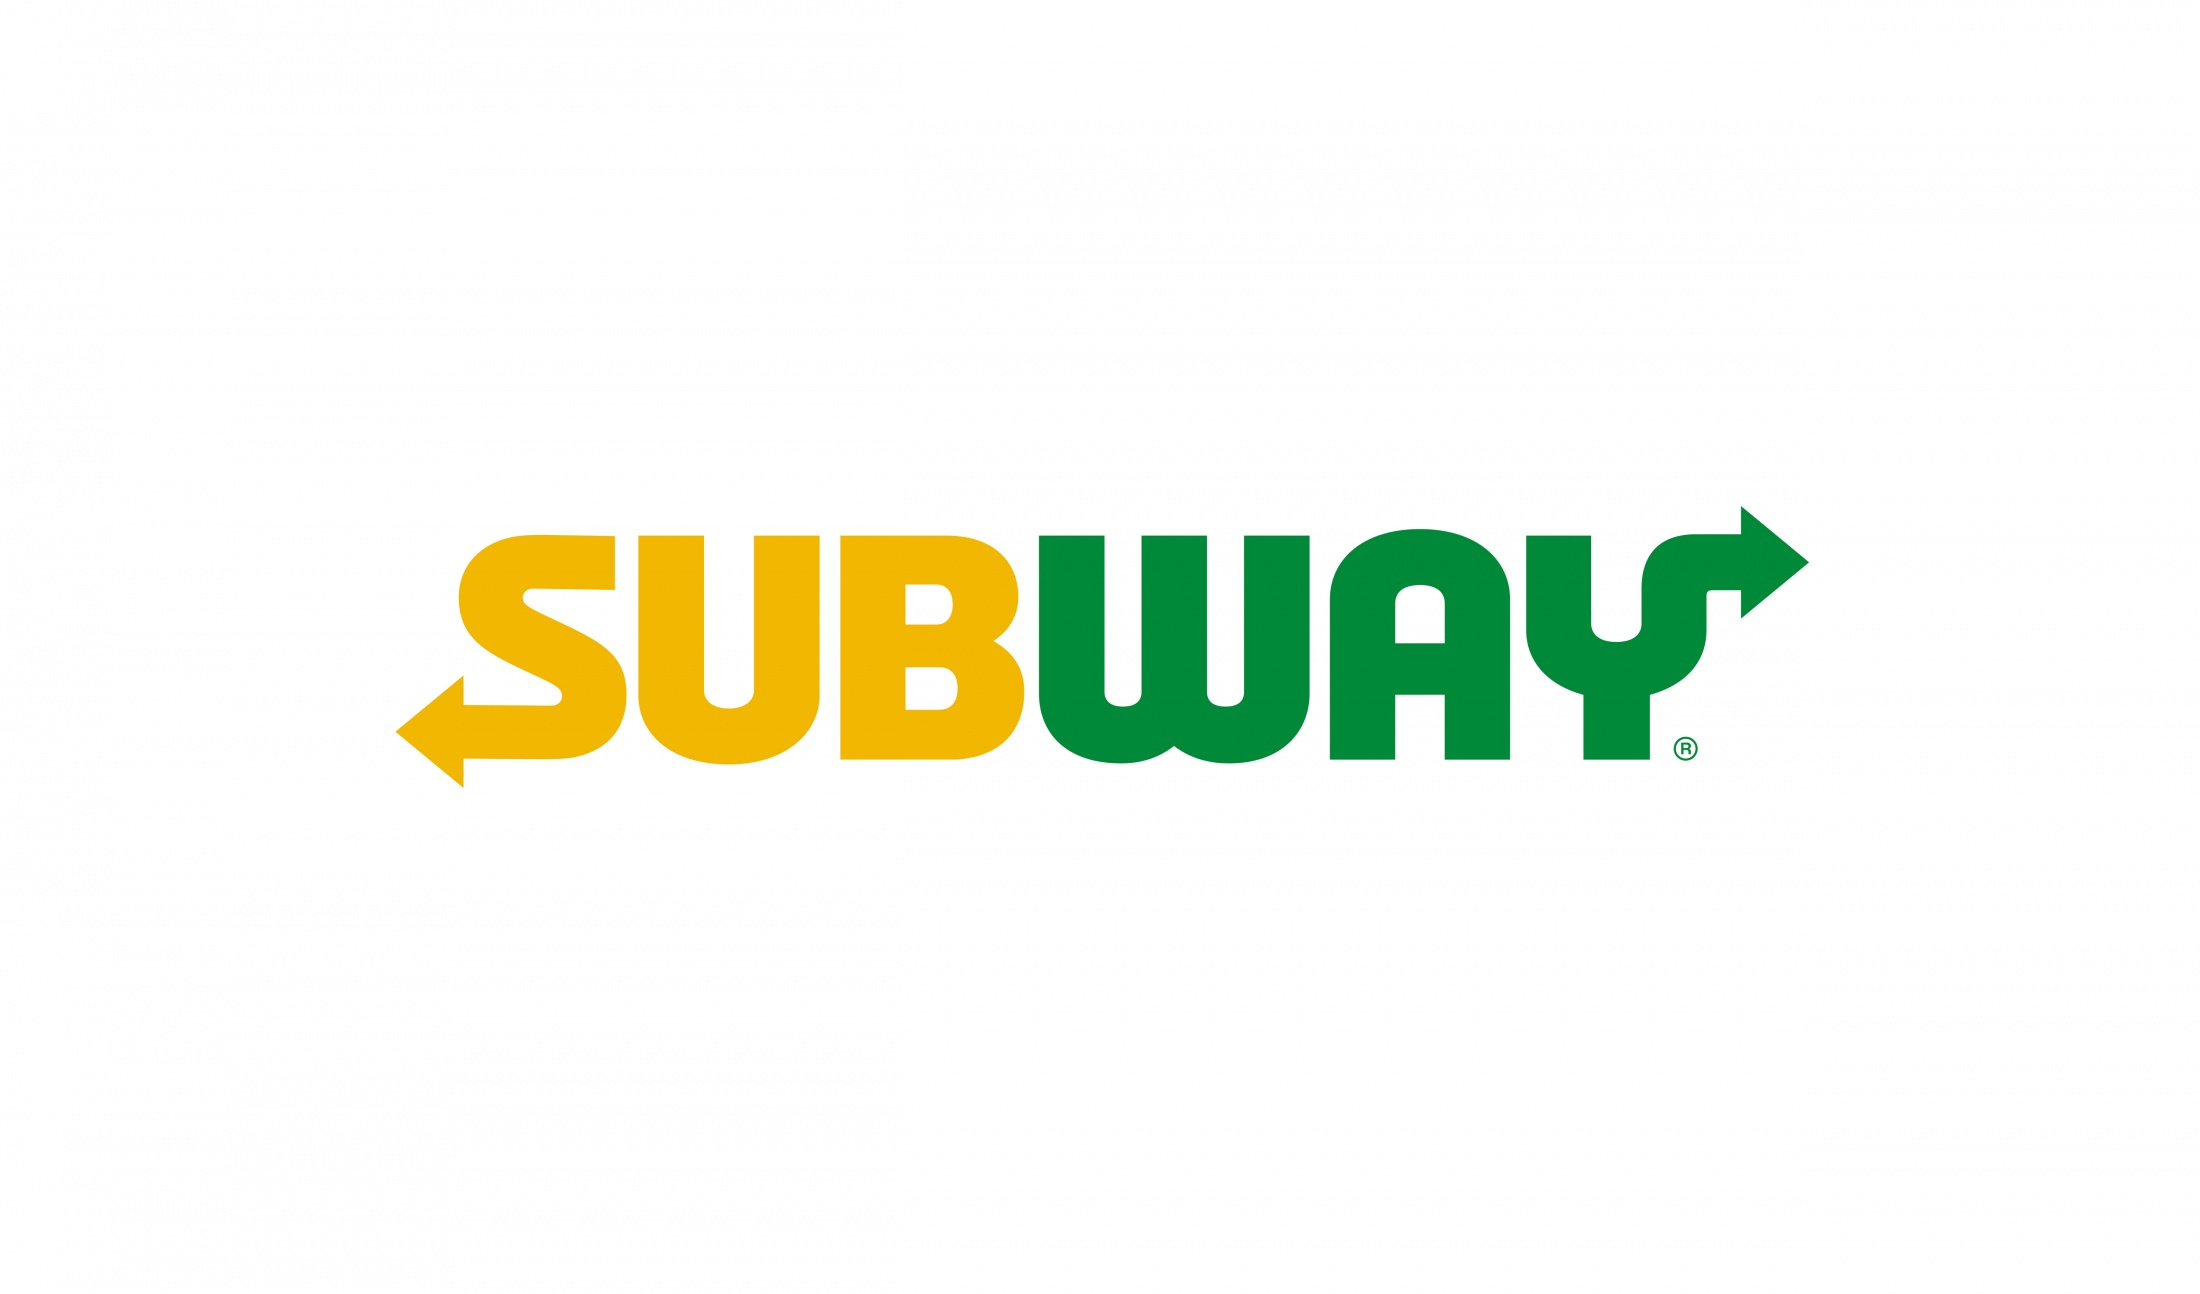 Image Media for Subway Visual Identity